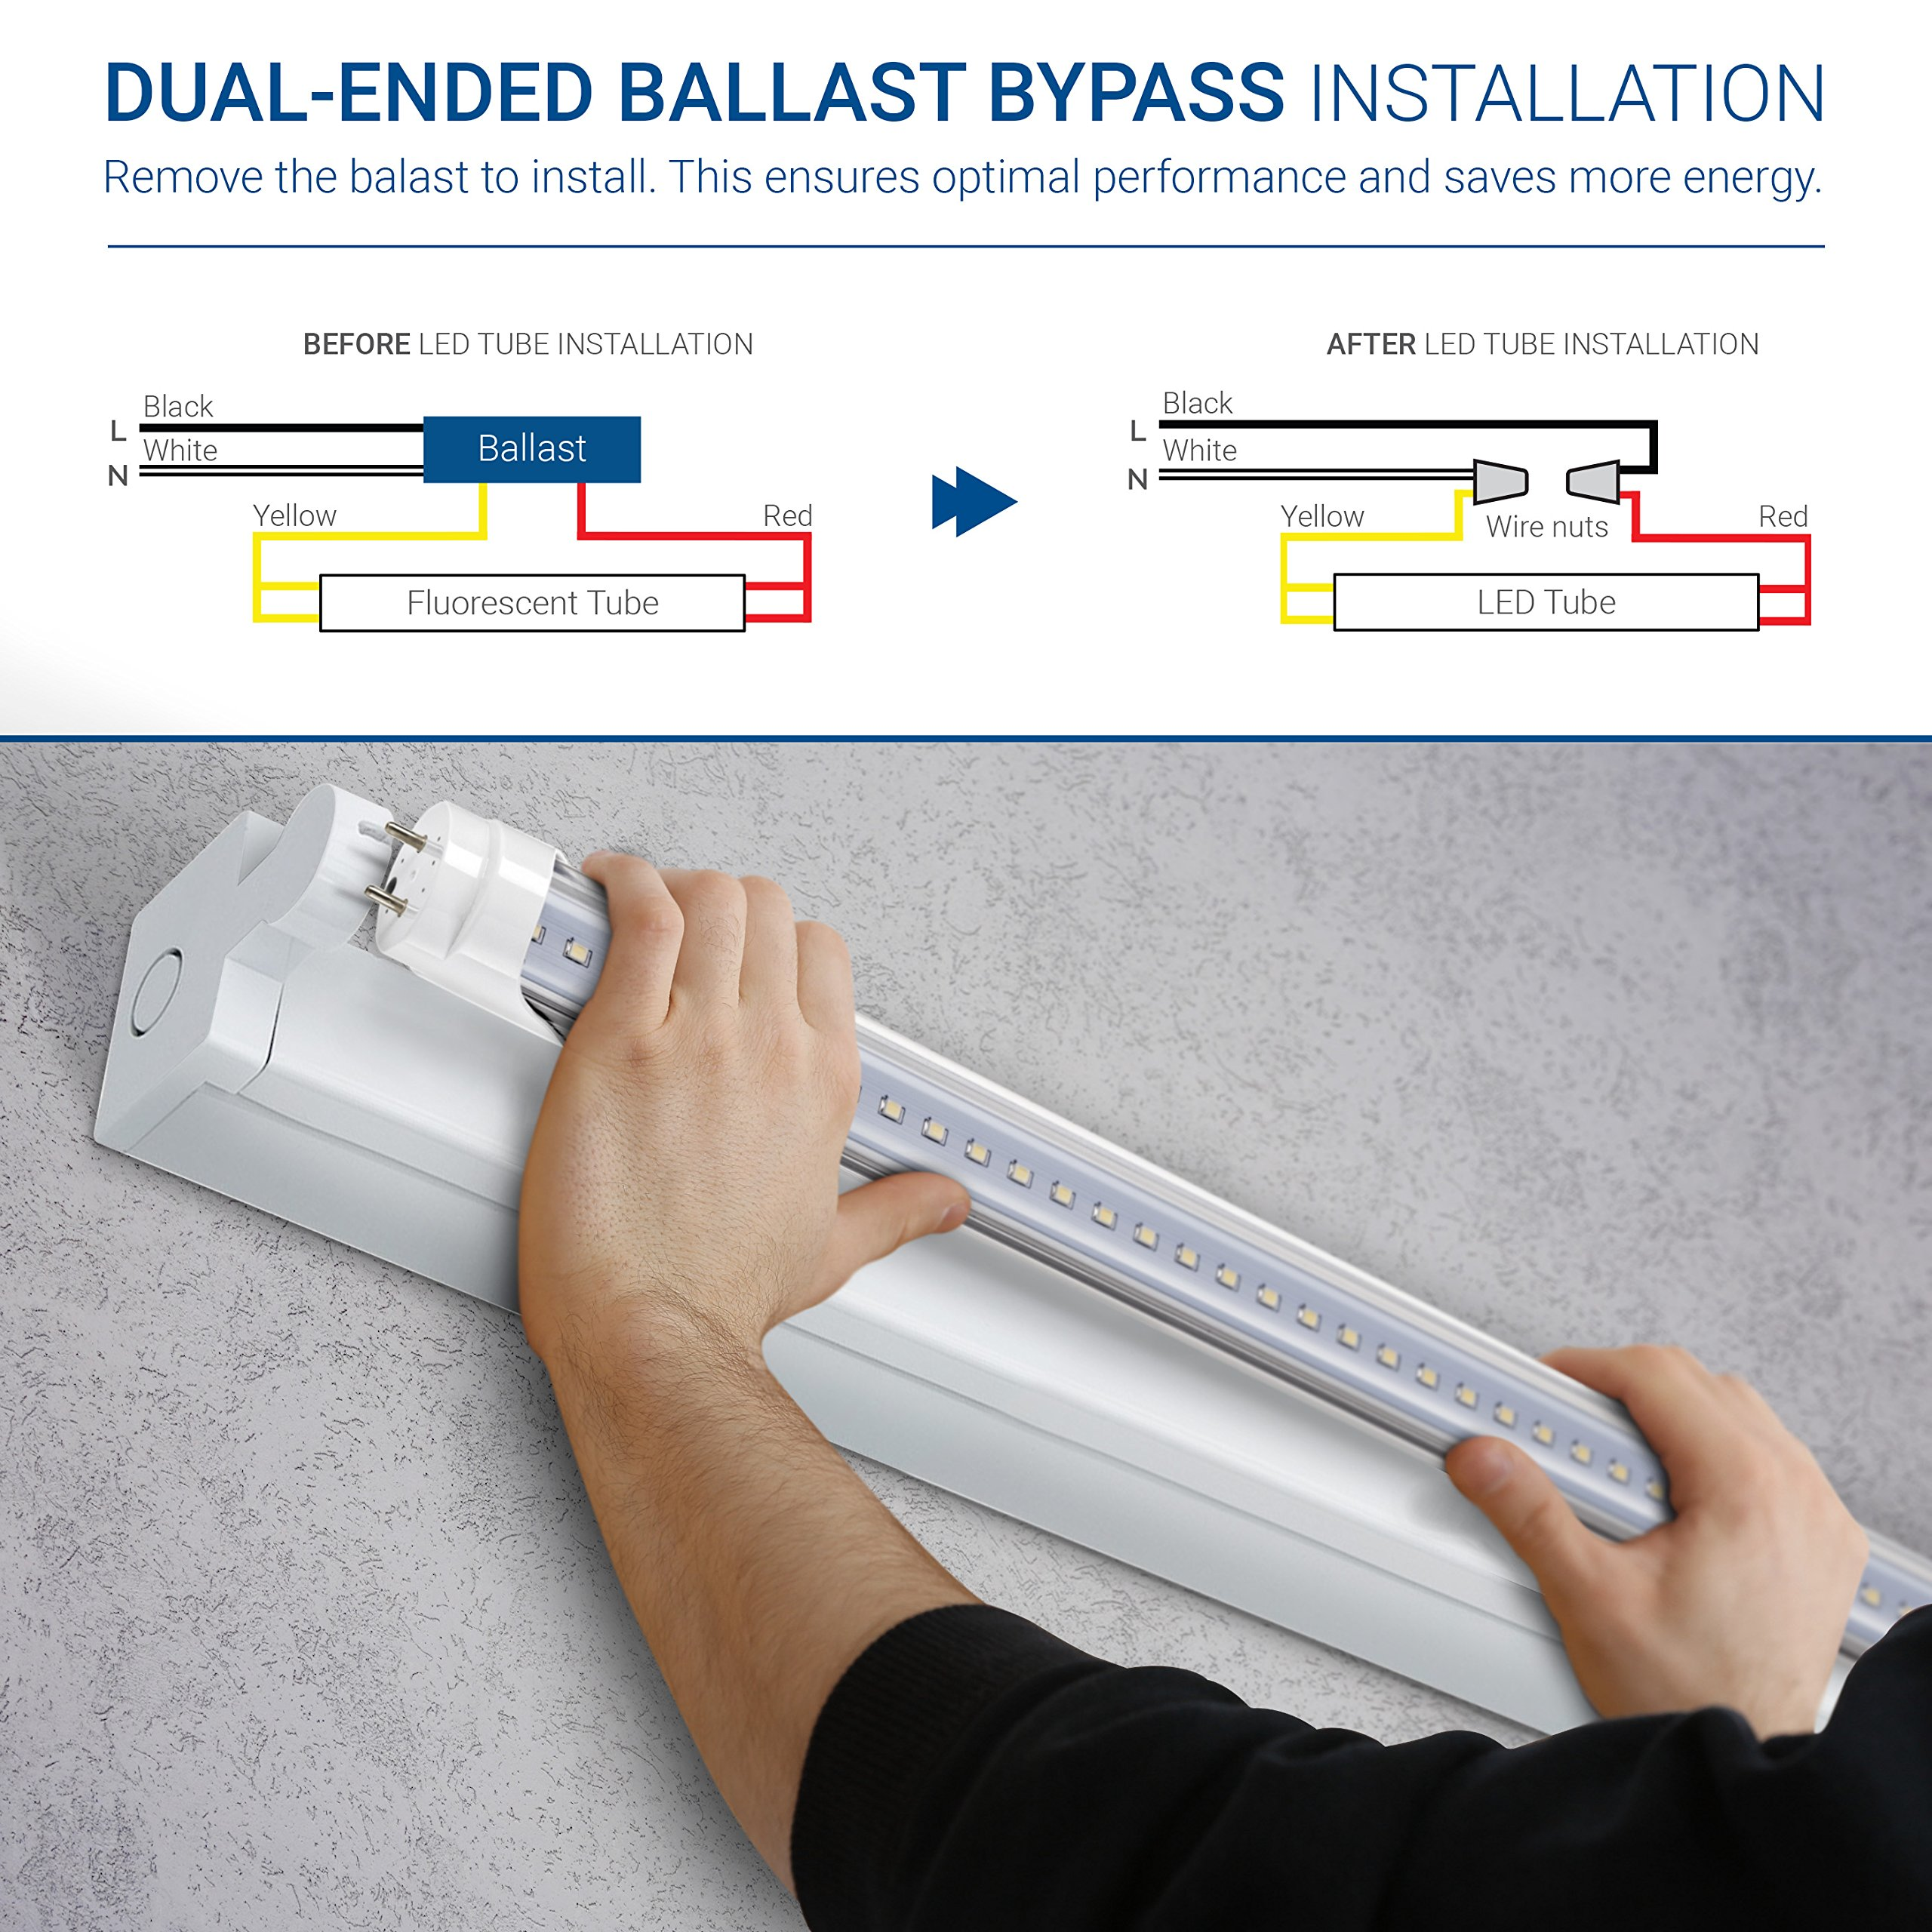 HyperSelect T8 T10 T12 8FT LED Tube Light, 36W (75W Equiv.), Ballast Bypass, Shatterproof, Fluorescent Replacement, High Output, 3800 Lumens, 5000K, UL, Frosted, Workshop, Warehouse, Garage - 20 Pack by Hyperikon (Image #3)